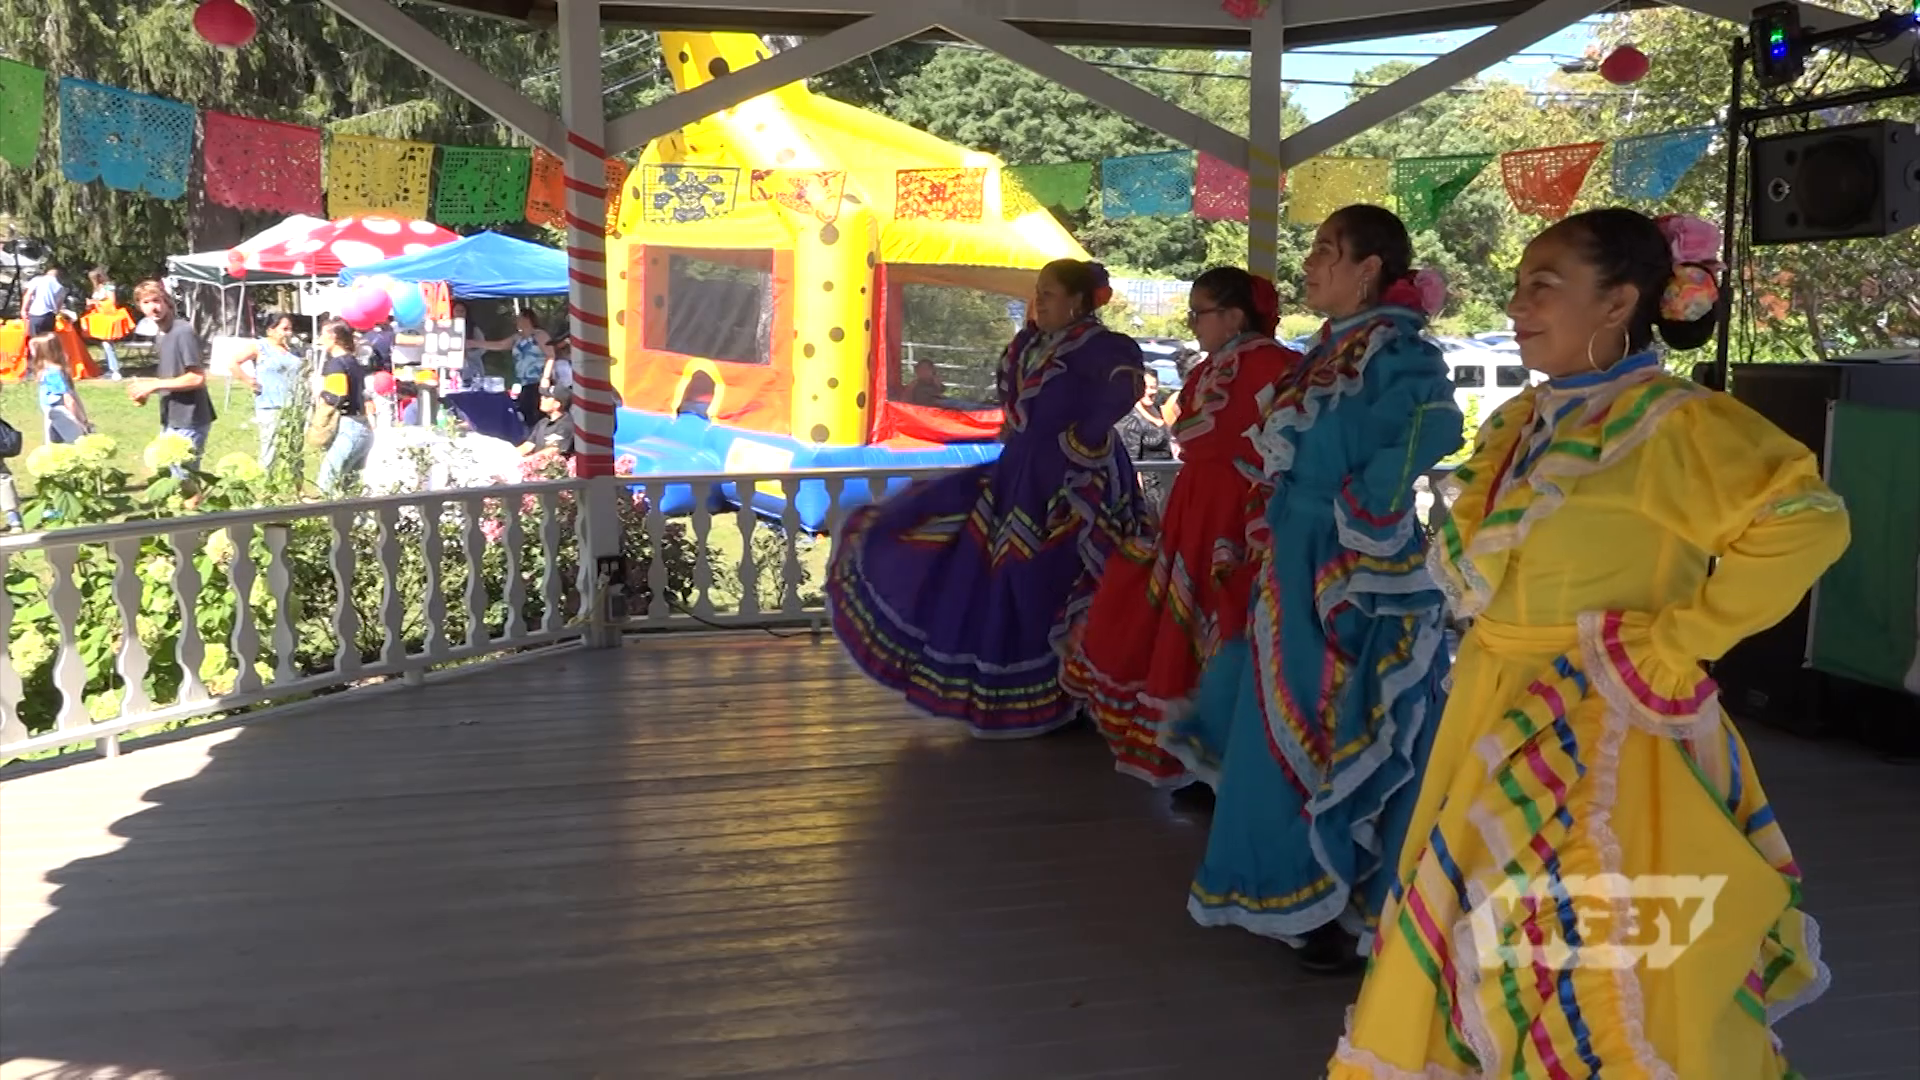 Visit western Mass Hispanic Heritage Month festivities in Holyoke, Amherst, and the Berkshires to see how local communities celebrated Hispanic culture.